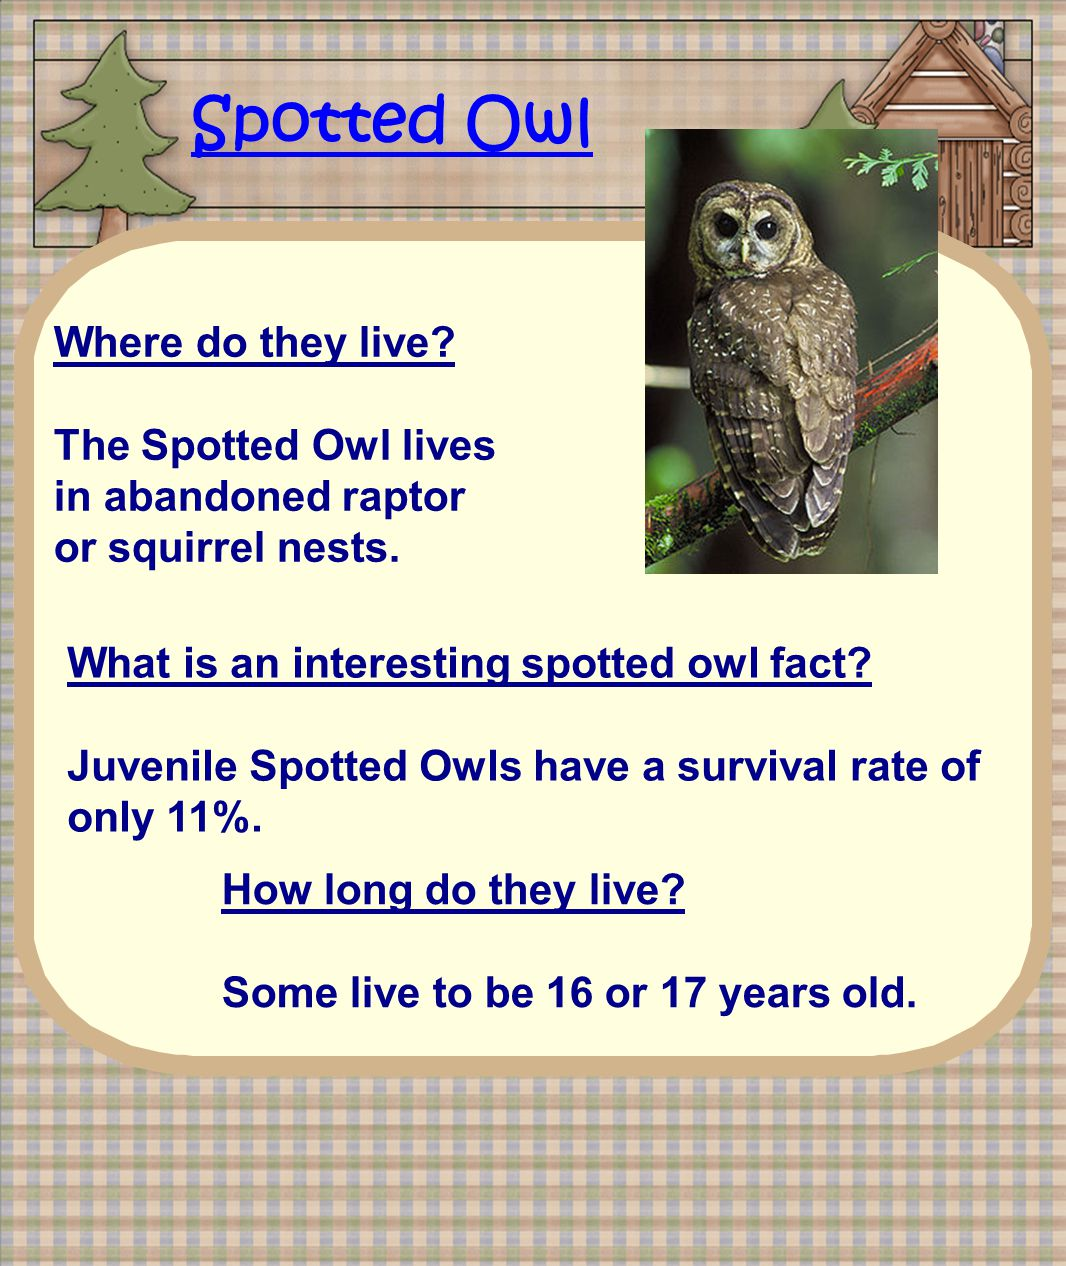 Spotted Owl Where do they live. The Spotted Owl lives in abandoned raptor or squirrel nests.